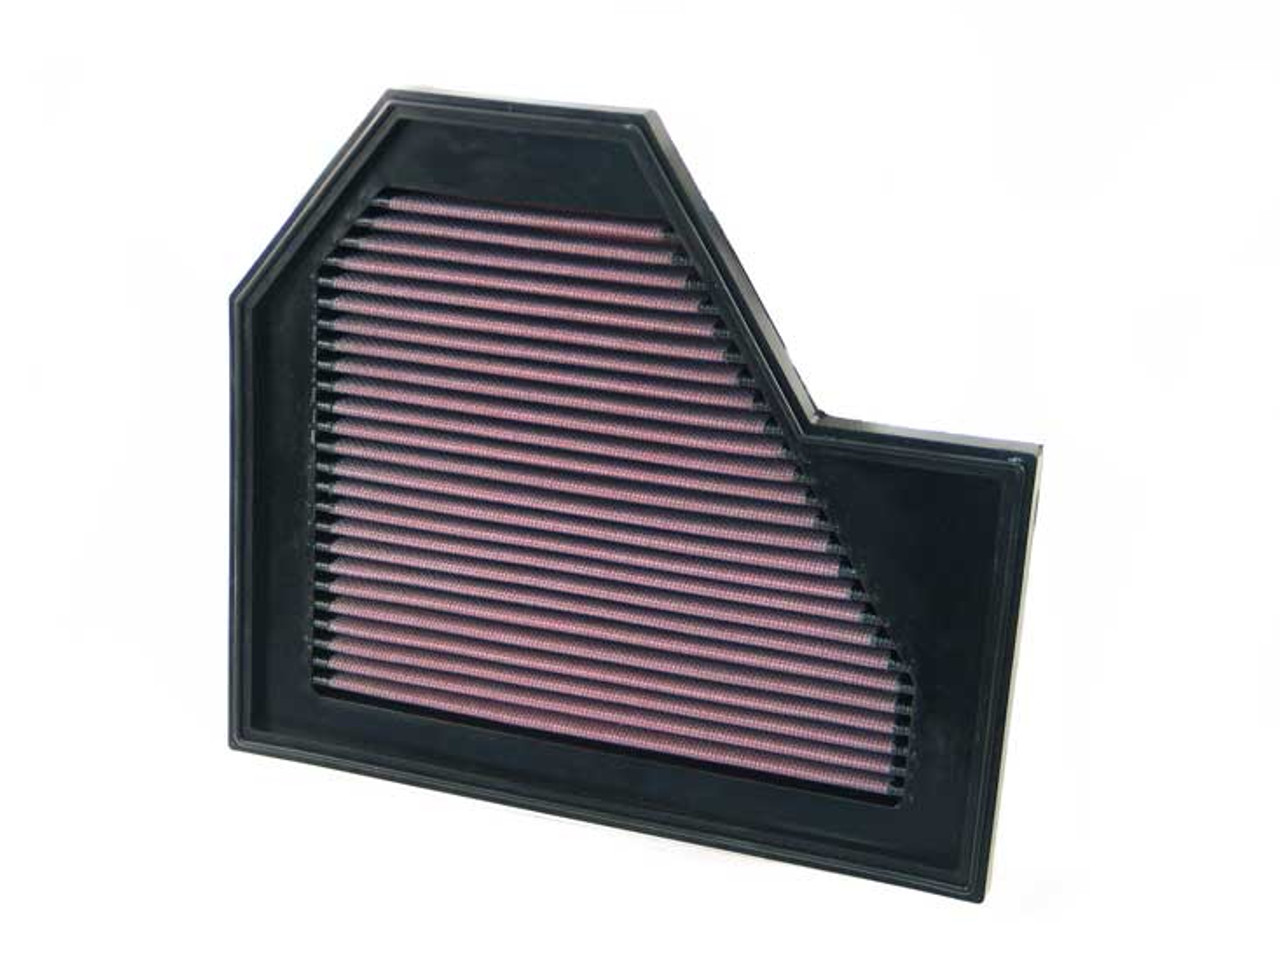 K&N BMW M5 5.0L-V10; 2006-2010 (RIGHT) Replacement Air Filter